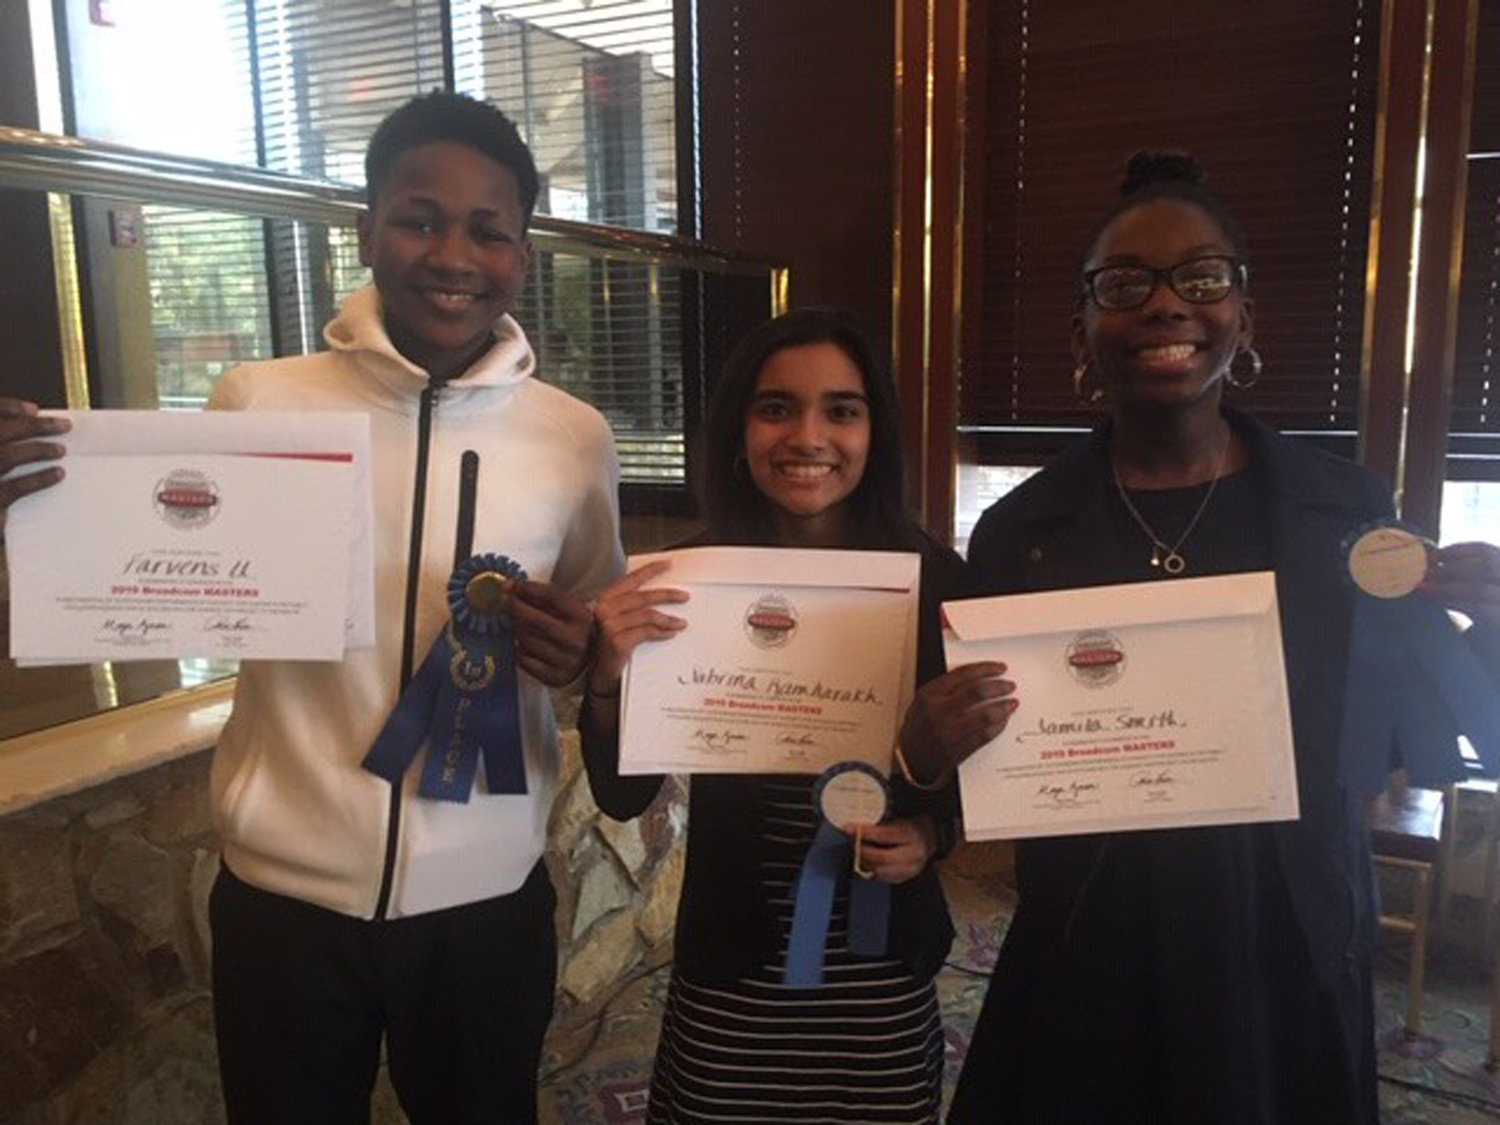 Farvens Ulysse, left, Sabrina Ramharakh and Jamila Smith won first place for their investigation into the relative absorbency of different paper towels.